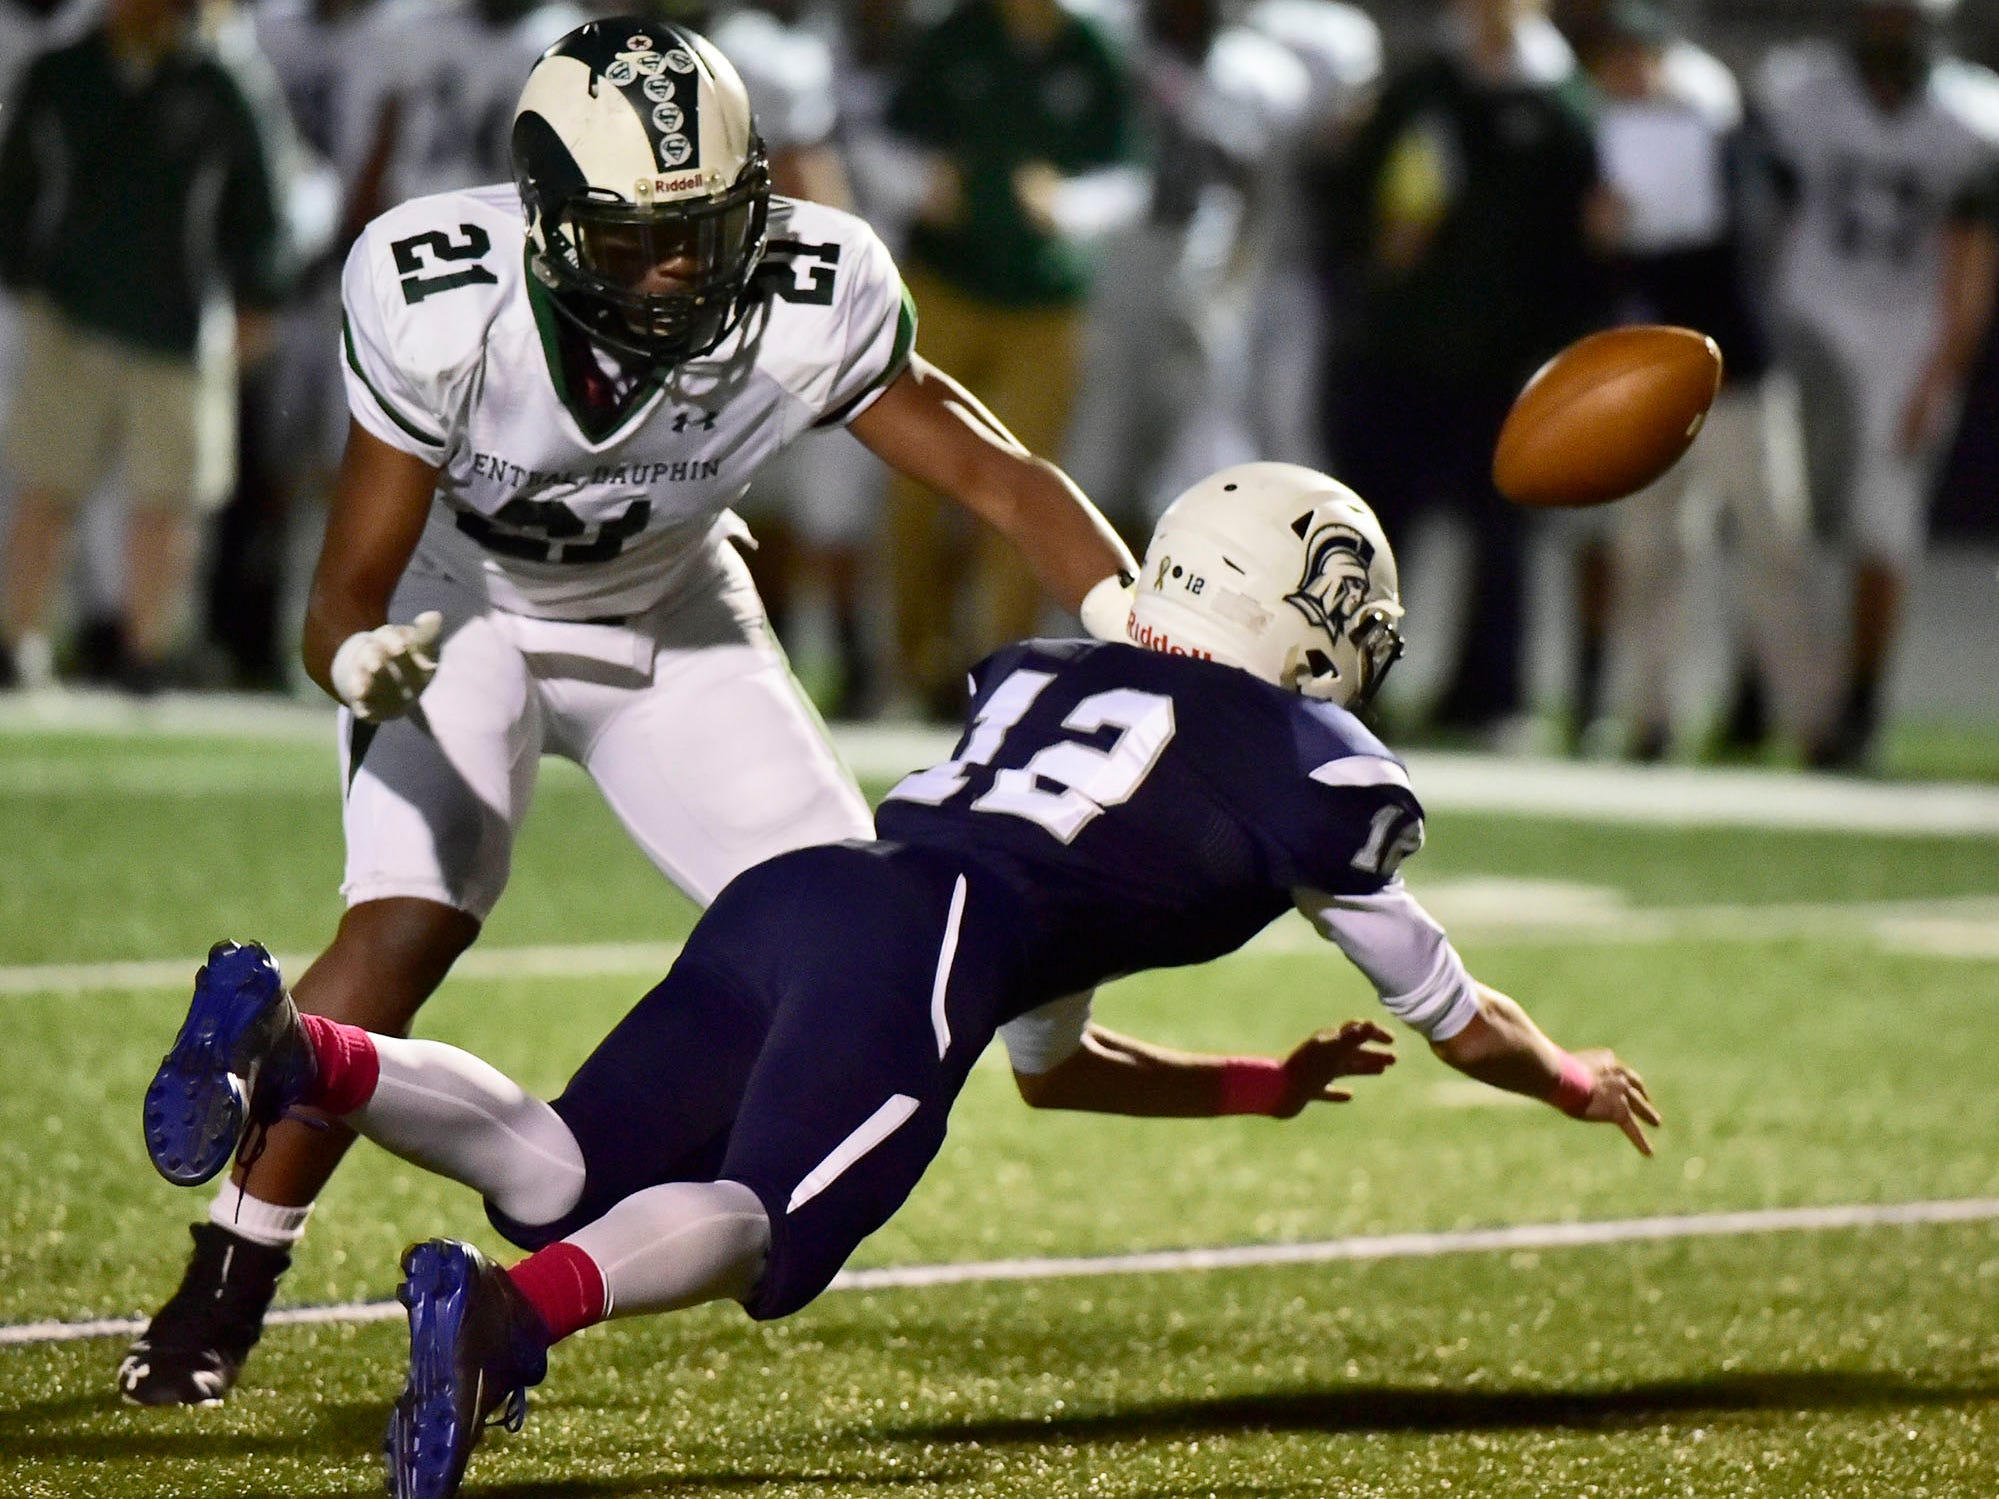 Chambersburg's Brady Stumbaugh (12) pitches a fumbled ball to a teammate as Amir Walton (21) of CD defends. Chambersburg lost to Central Dauphin 35-14 in PIAA football on Friday, Oct. 19, 2018.